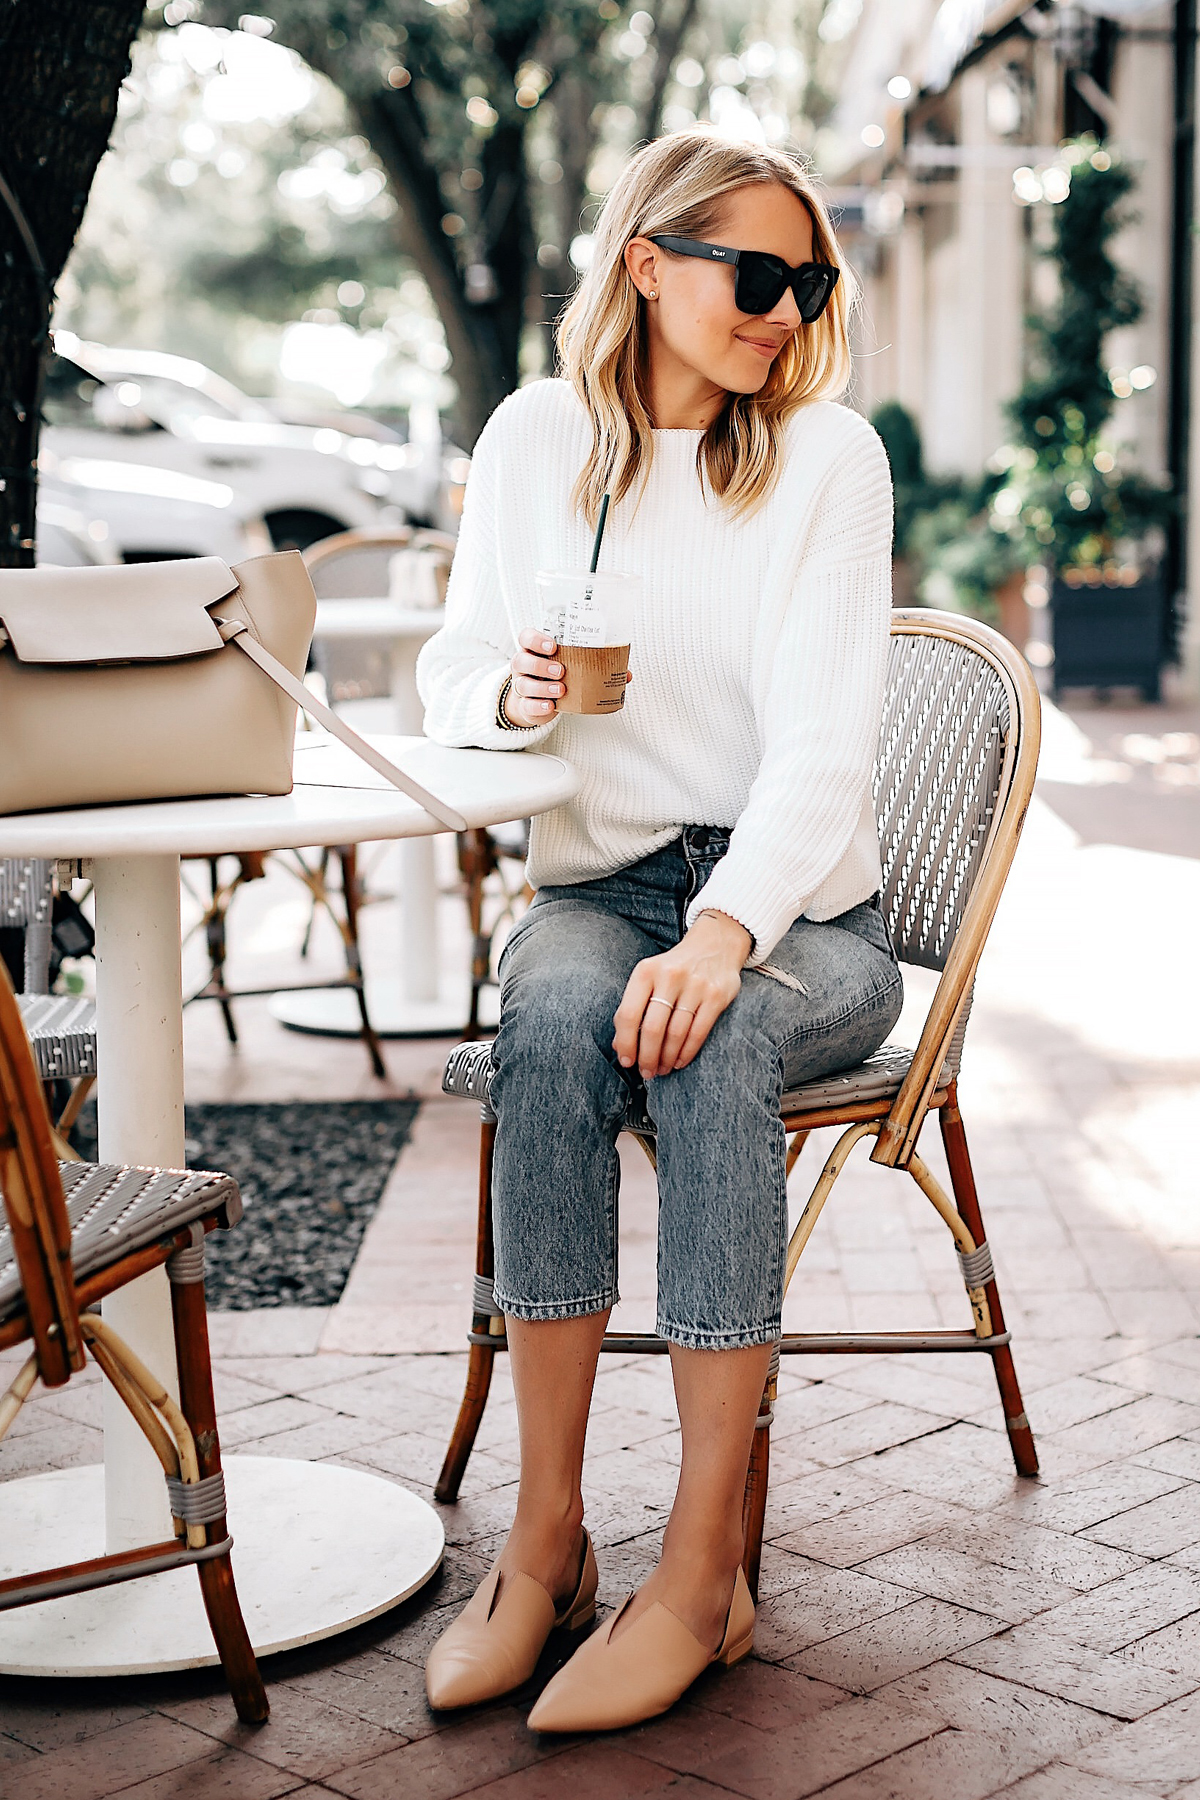 Blonde Woman Wearing Wearing White Sweater Jeans Blush Flats Drinking Coffee at a Cafe San Diego Fashion Blogger